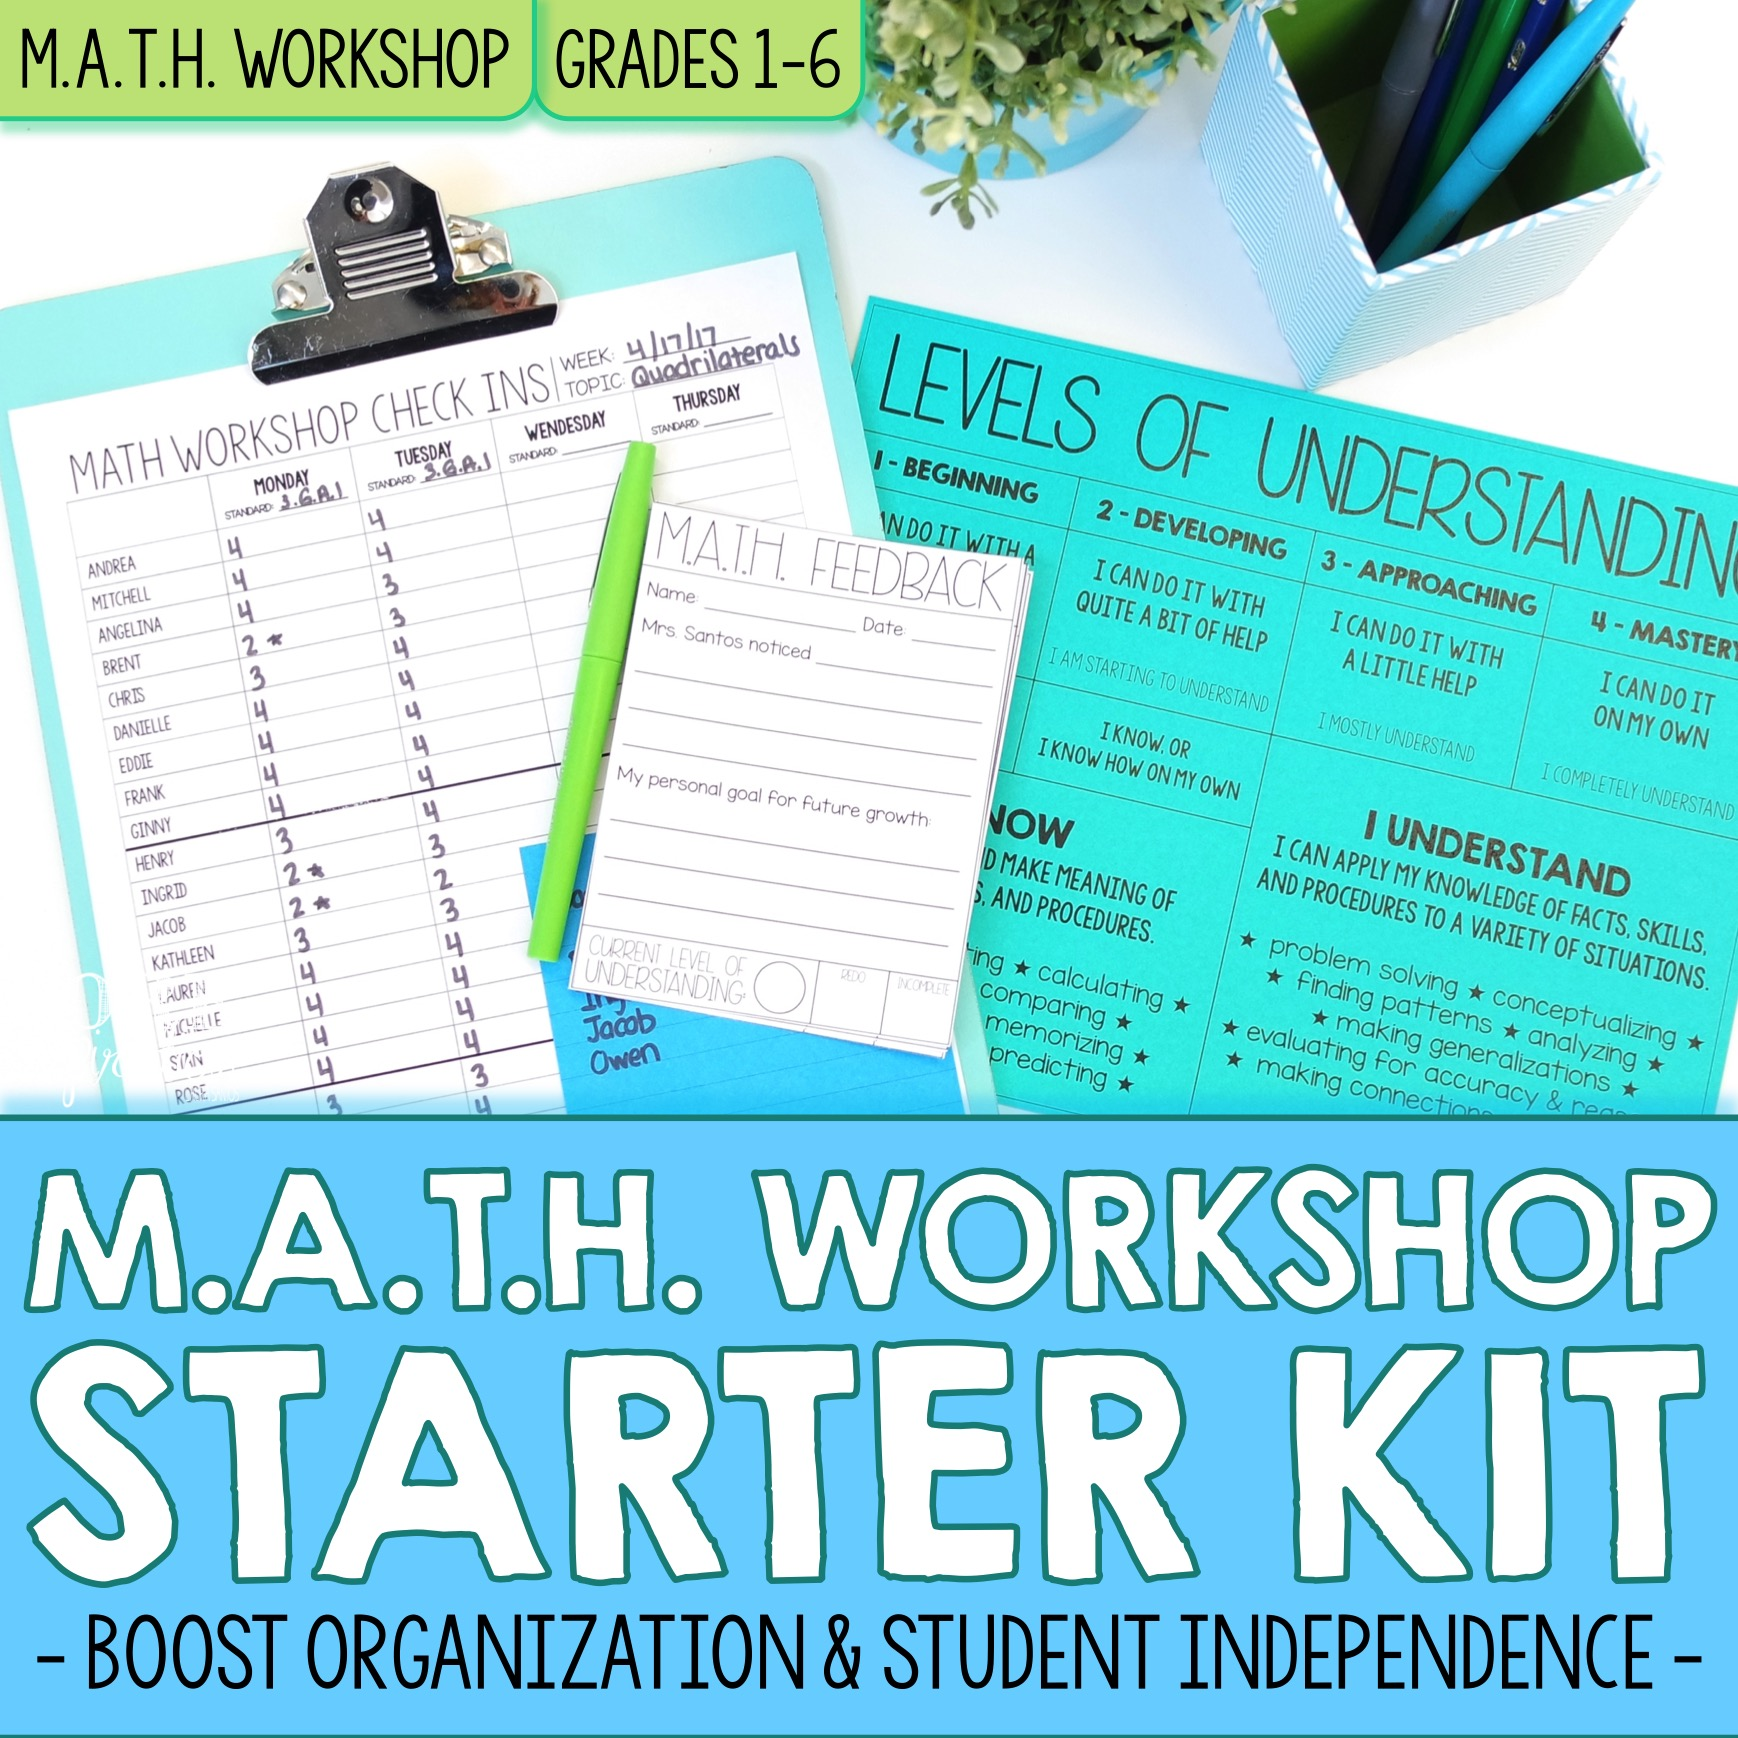 Math Workshop Starter Kit Cover